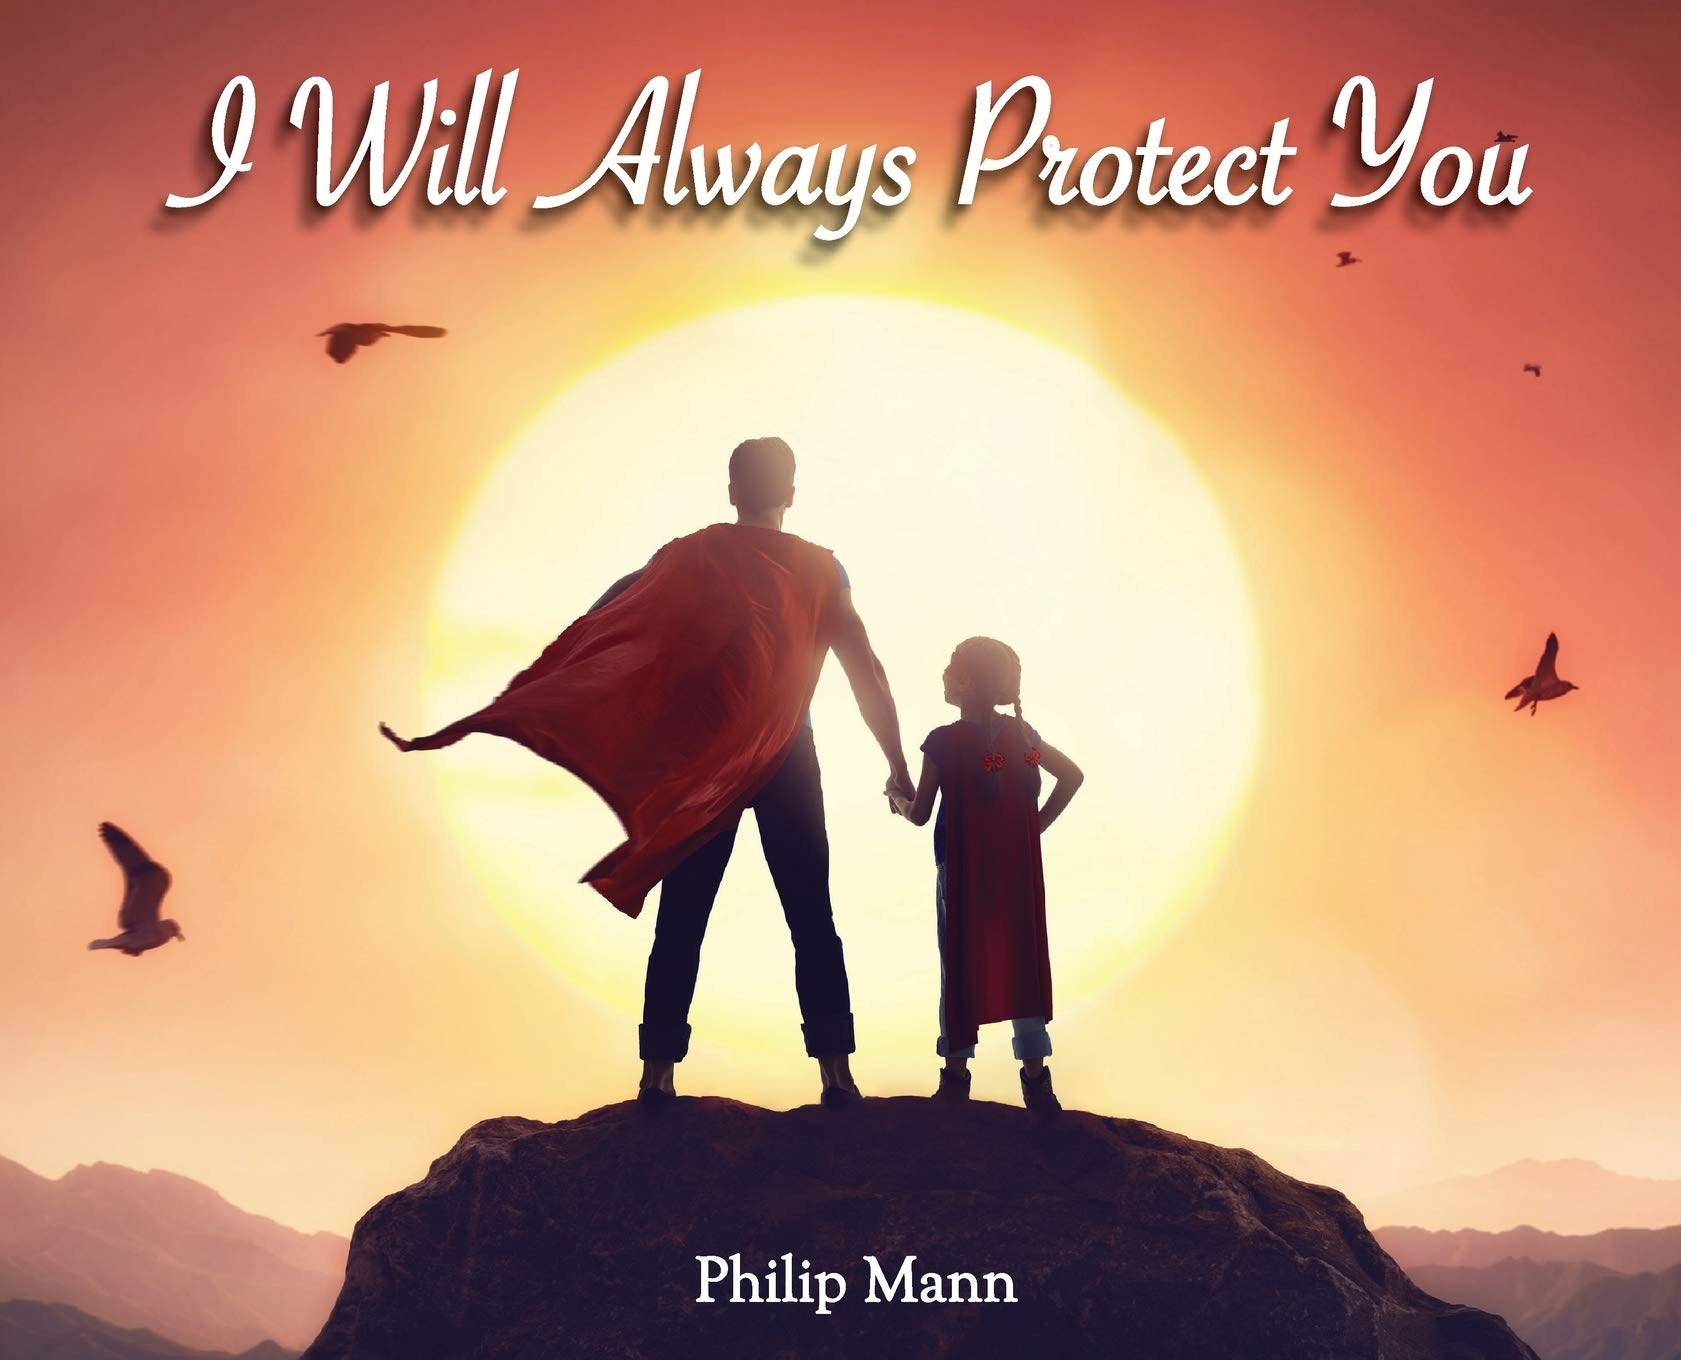 I Will Always Protect You by way of Mann, Philip